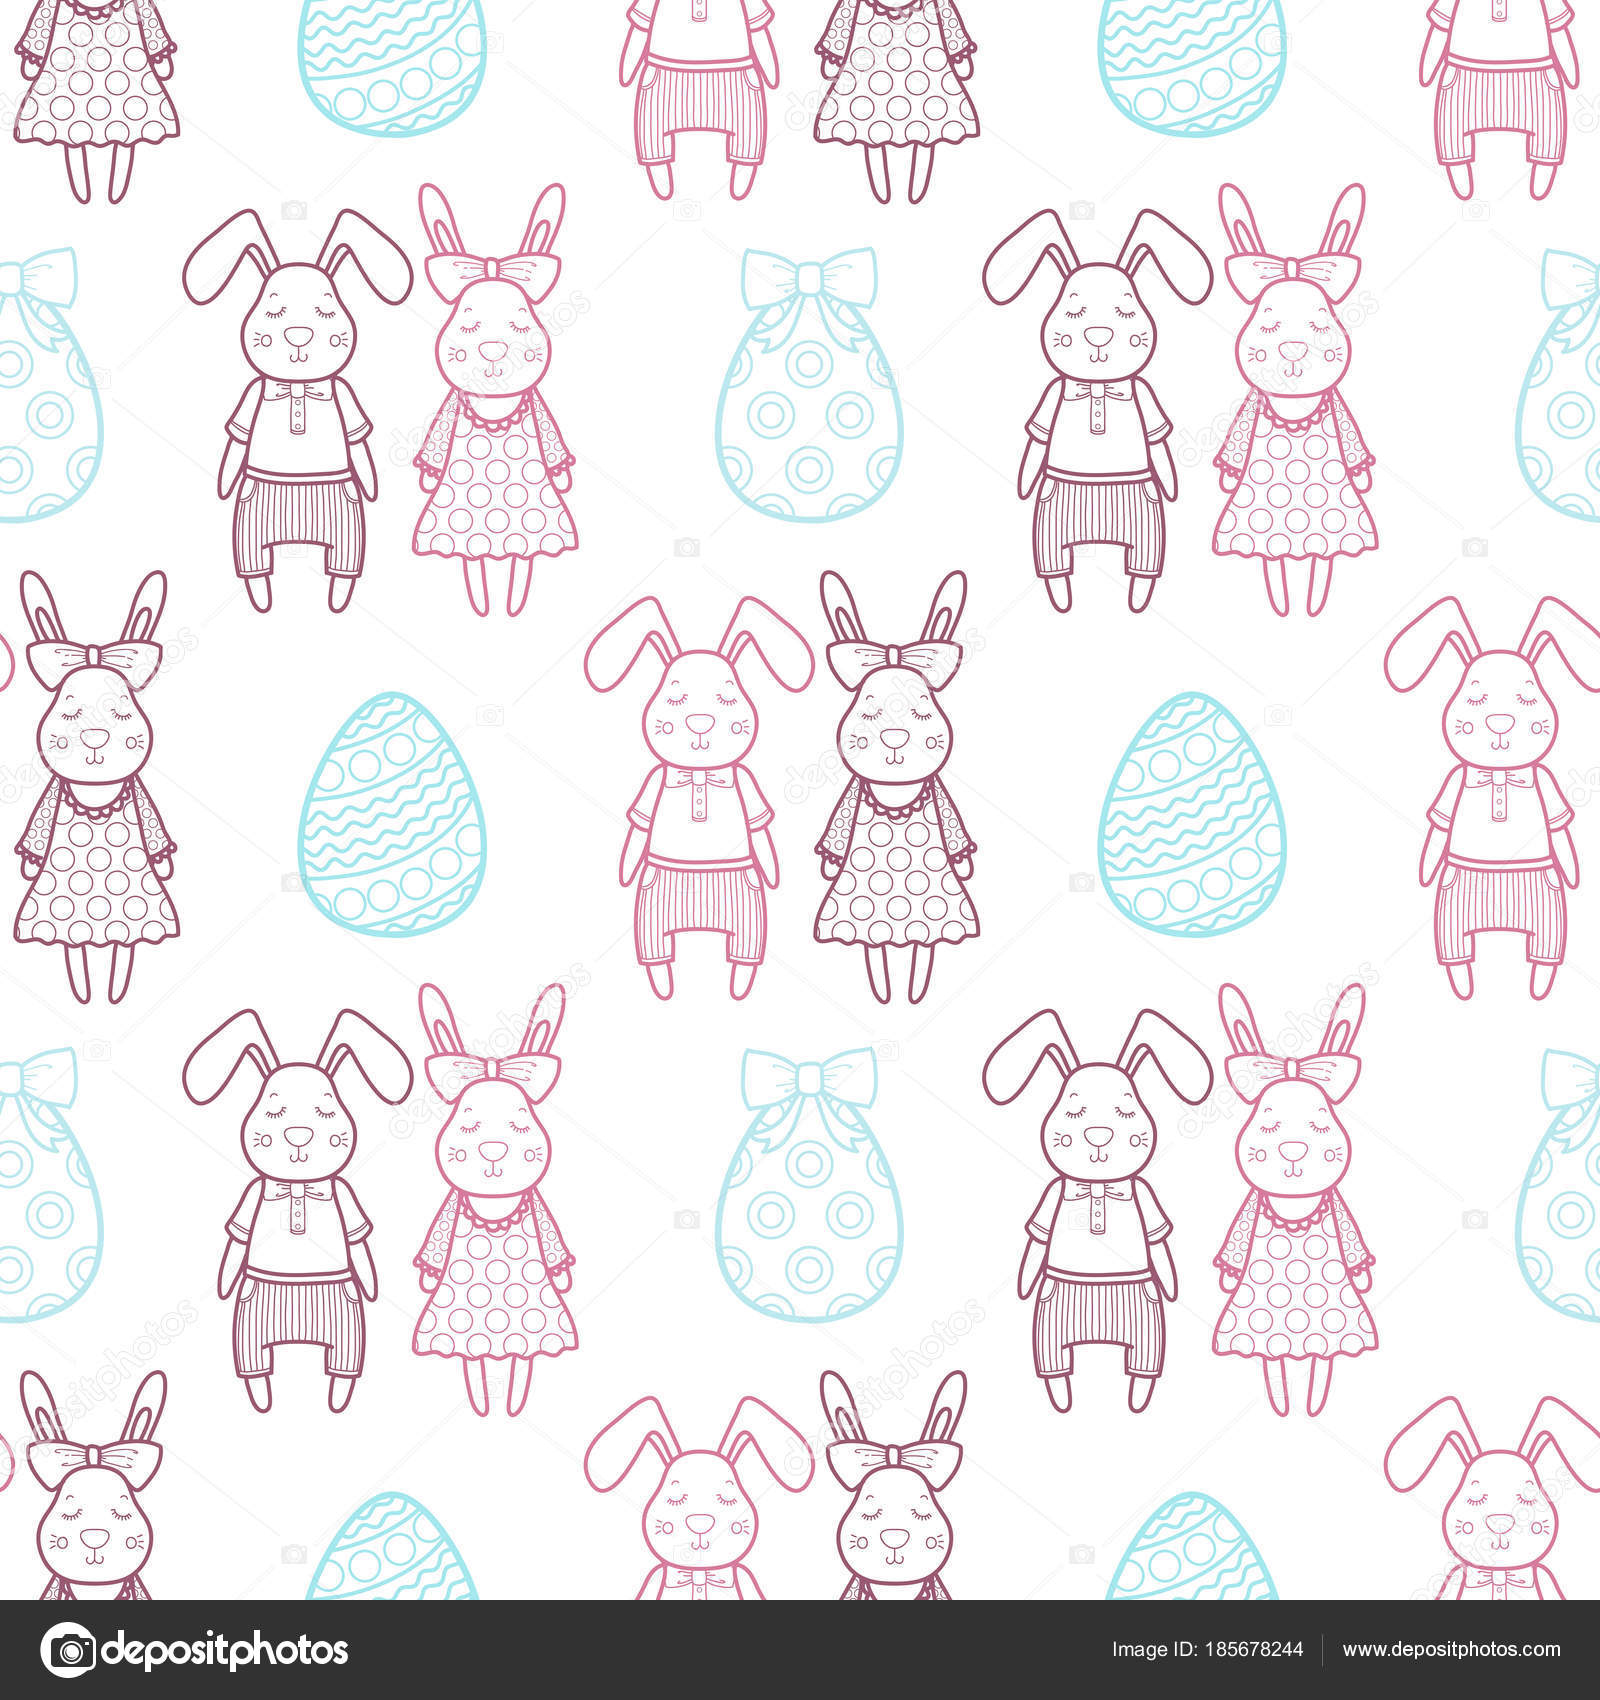 Decorative vector pattern for a holiday Easter  Rabbits girl